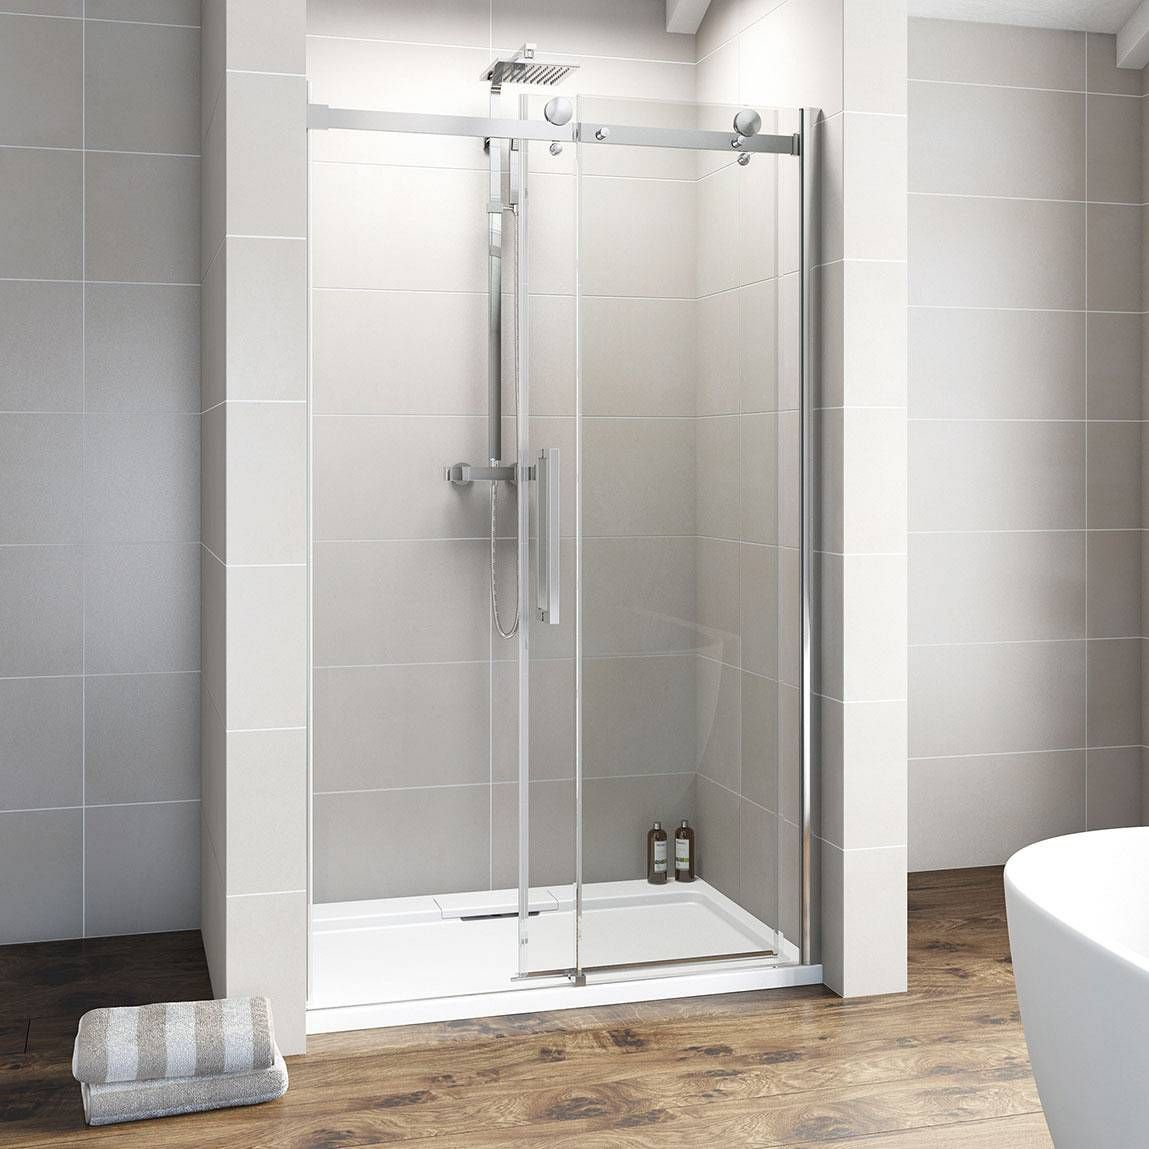 V8 8mm Frameless Sliding Shower Door 1200 Now 199 99 Less Than Half Price Frameless Sliding Shower Doors Shower Doors Shower Enclosure